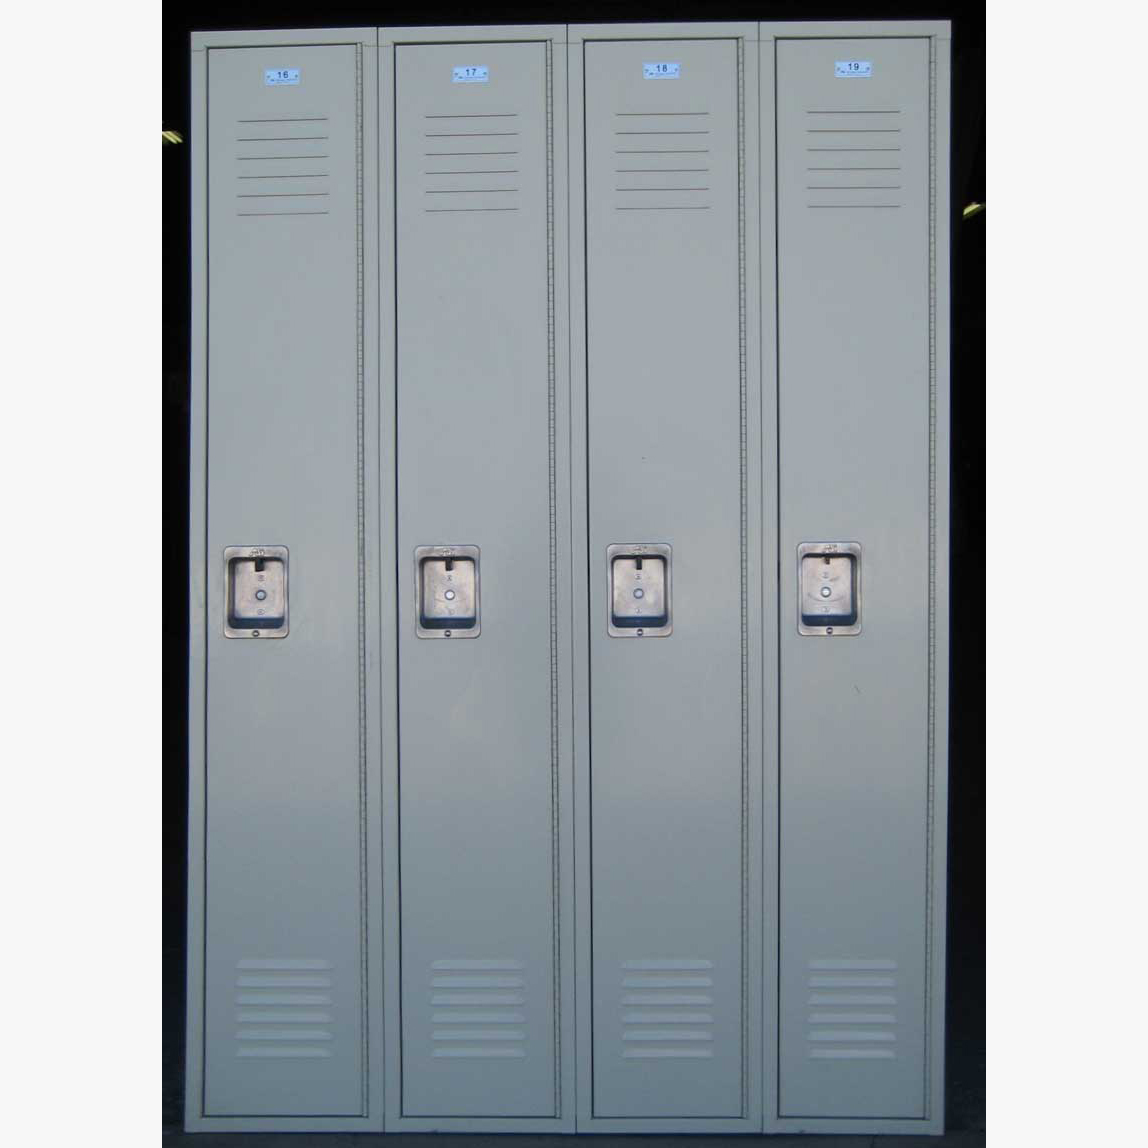 Penco Lockers | Penco Metal Lockers | Locker Dimensions Gym